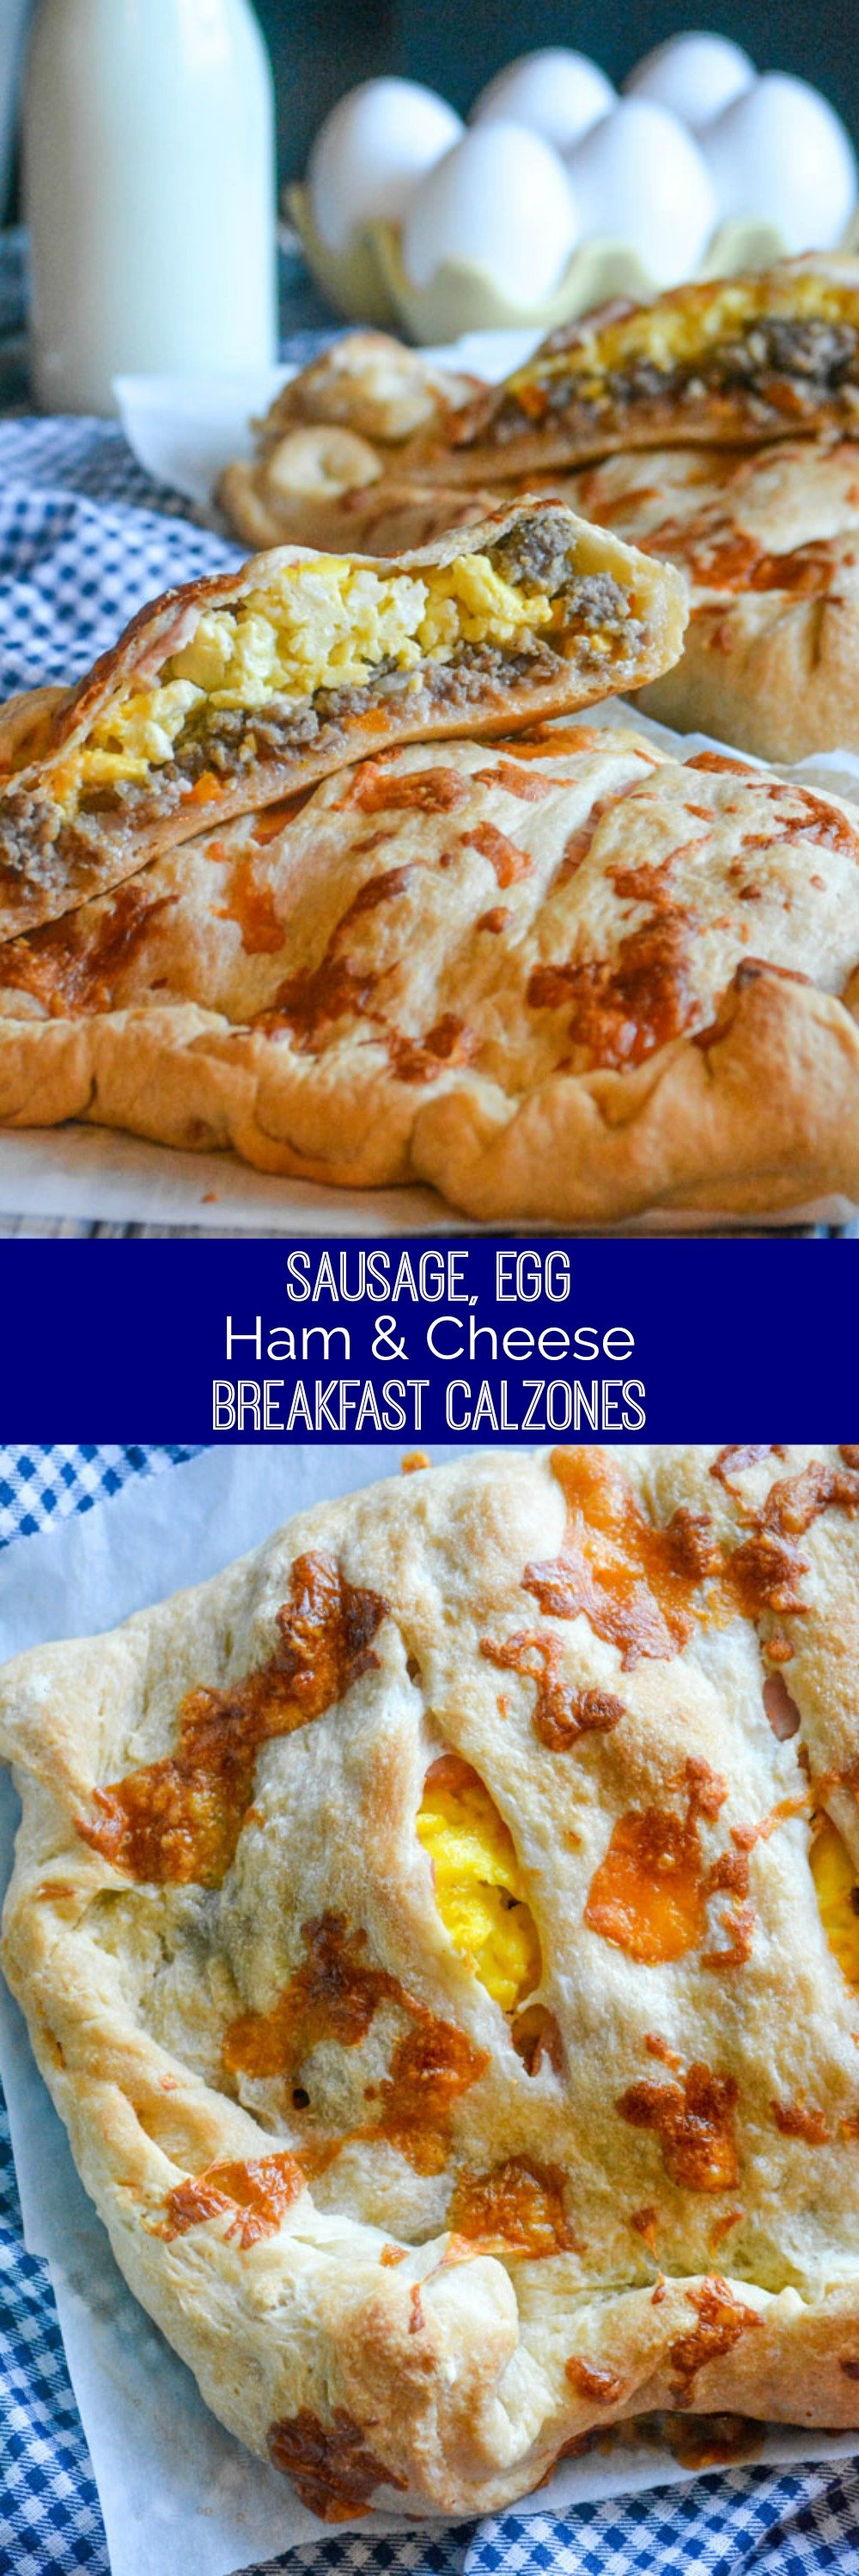 Breakfast, even brunch, can be hard- especially finding something everyone wants to eat. These easy Cheesy Sausage Ham & Egg Breakfast Calzones are the way to go!